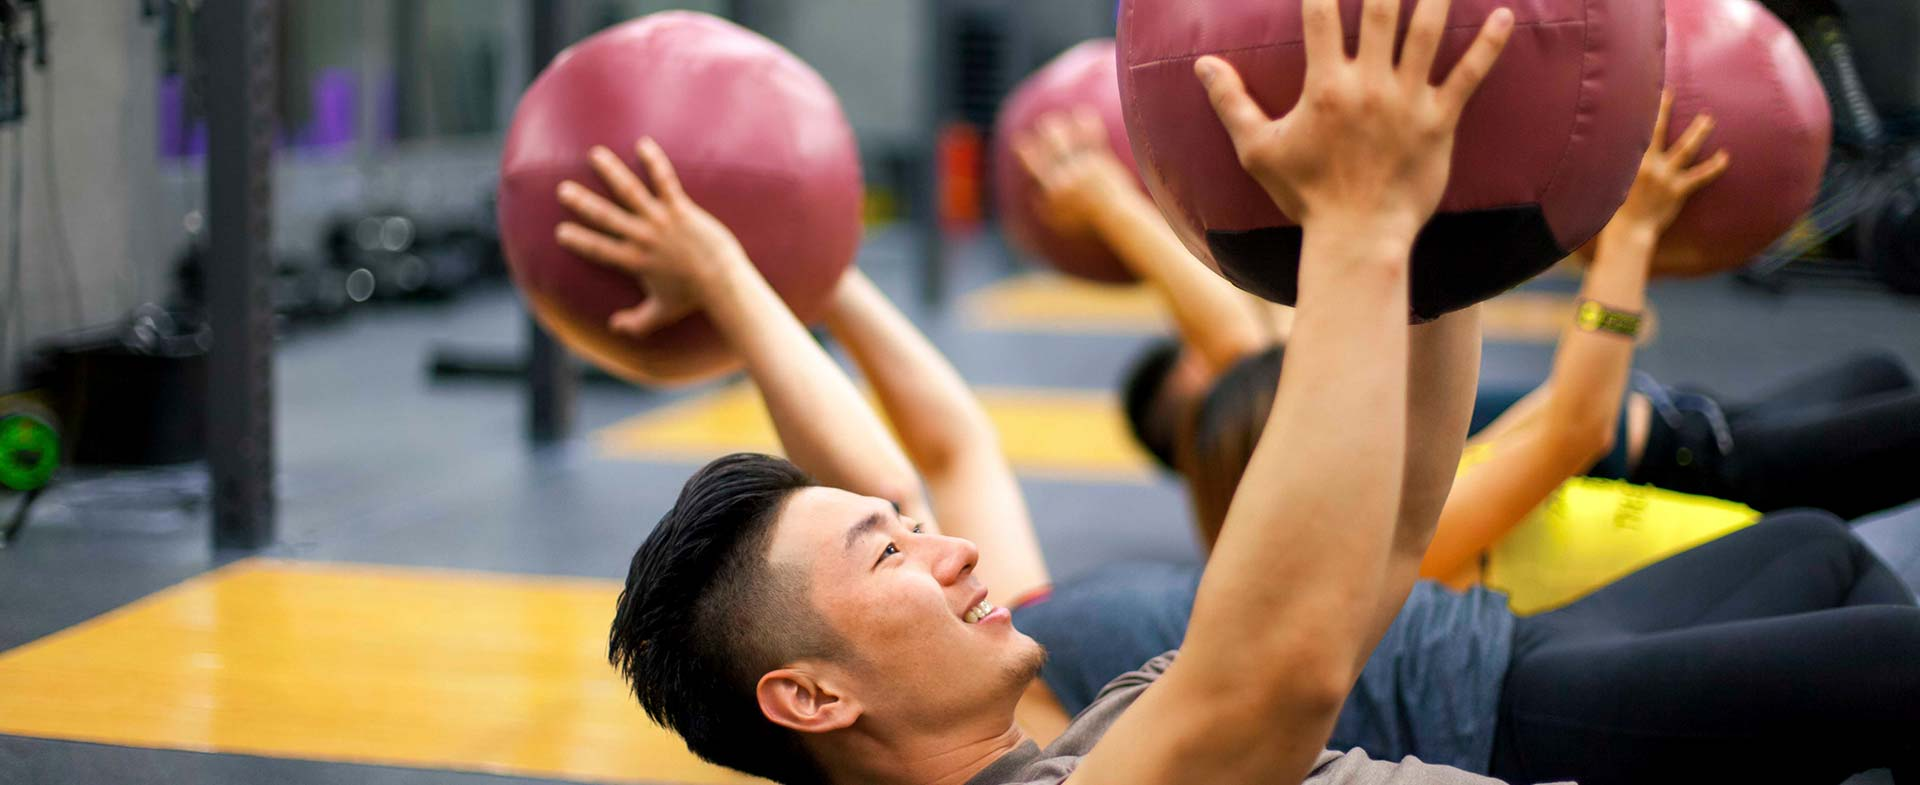 man using medicine ball